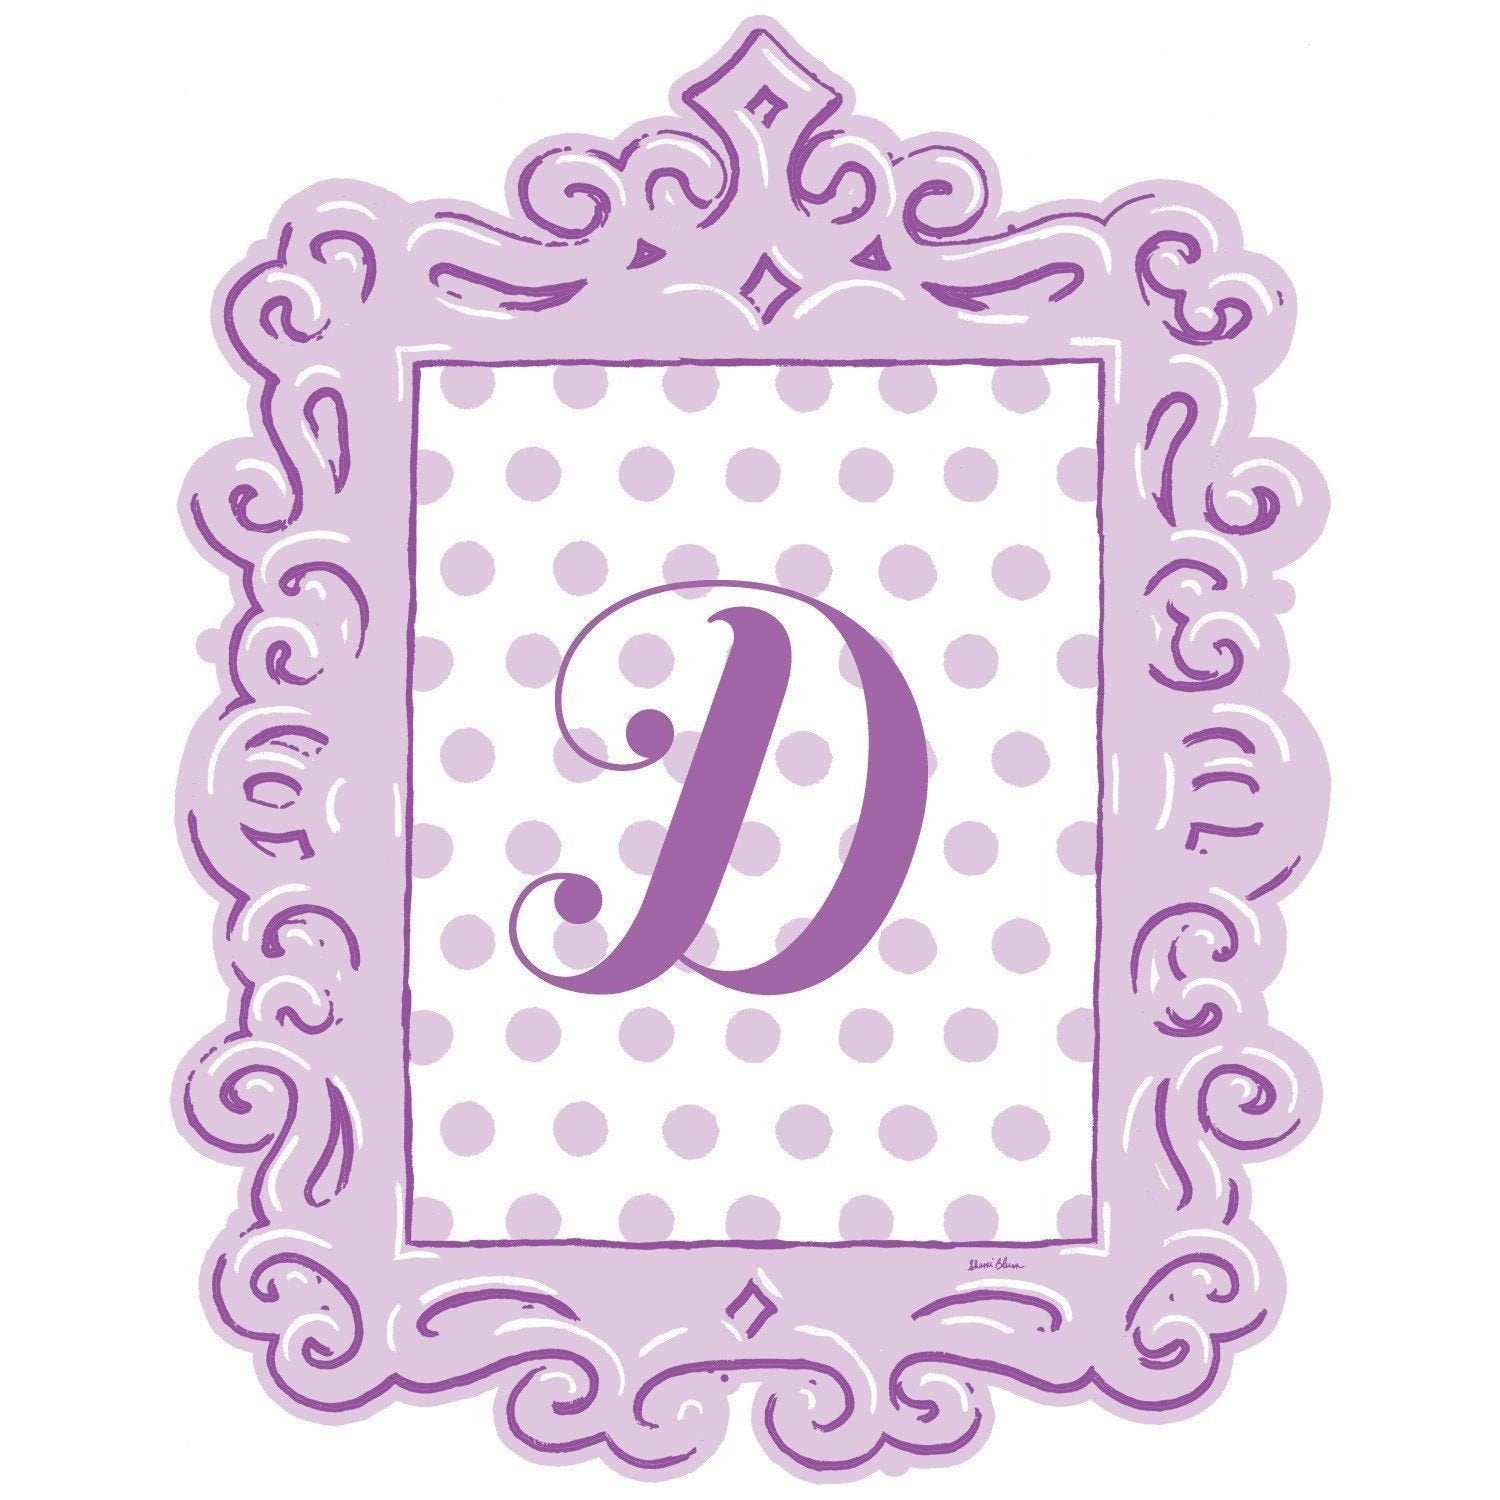 Framed Dotted Monogram Wall Decal in Lavender-Decals-Default-Jack and Jill Boutique